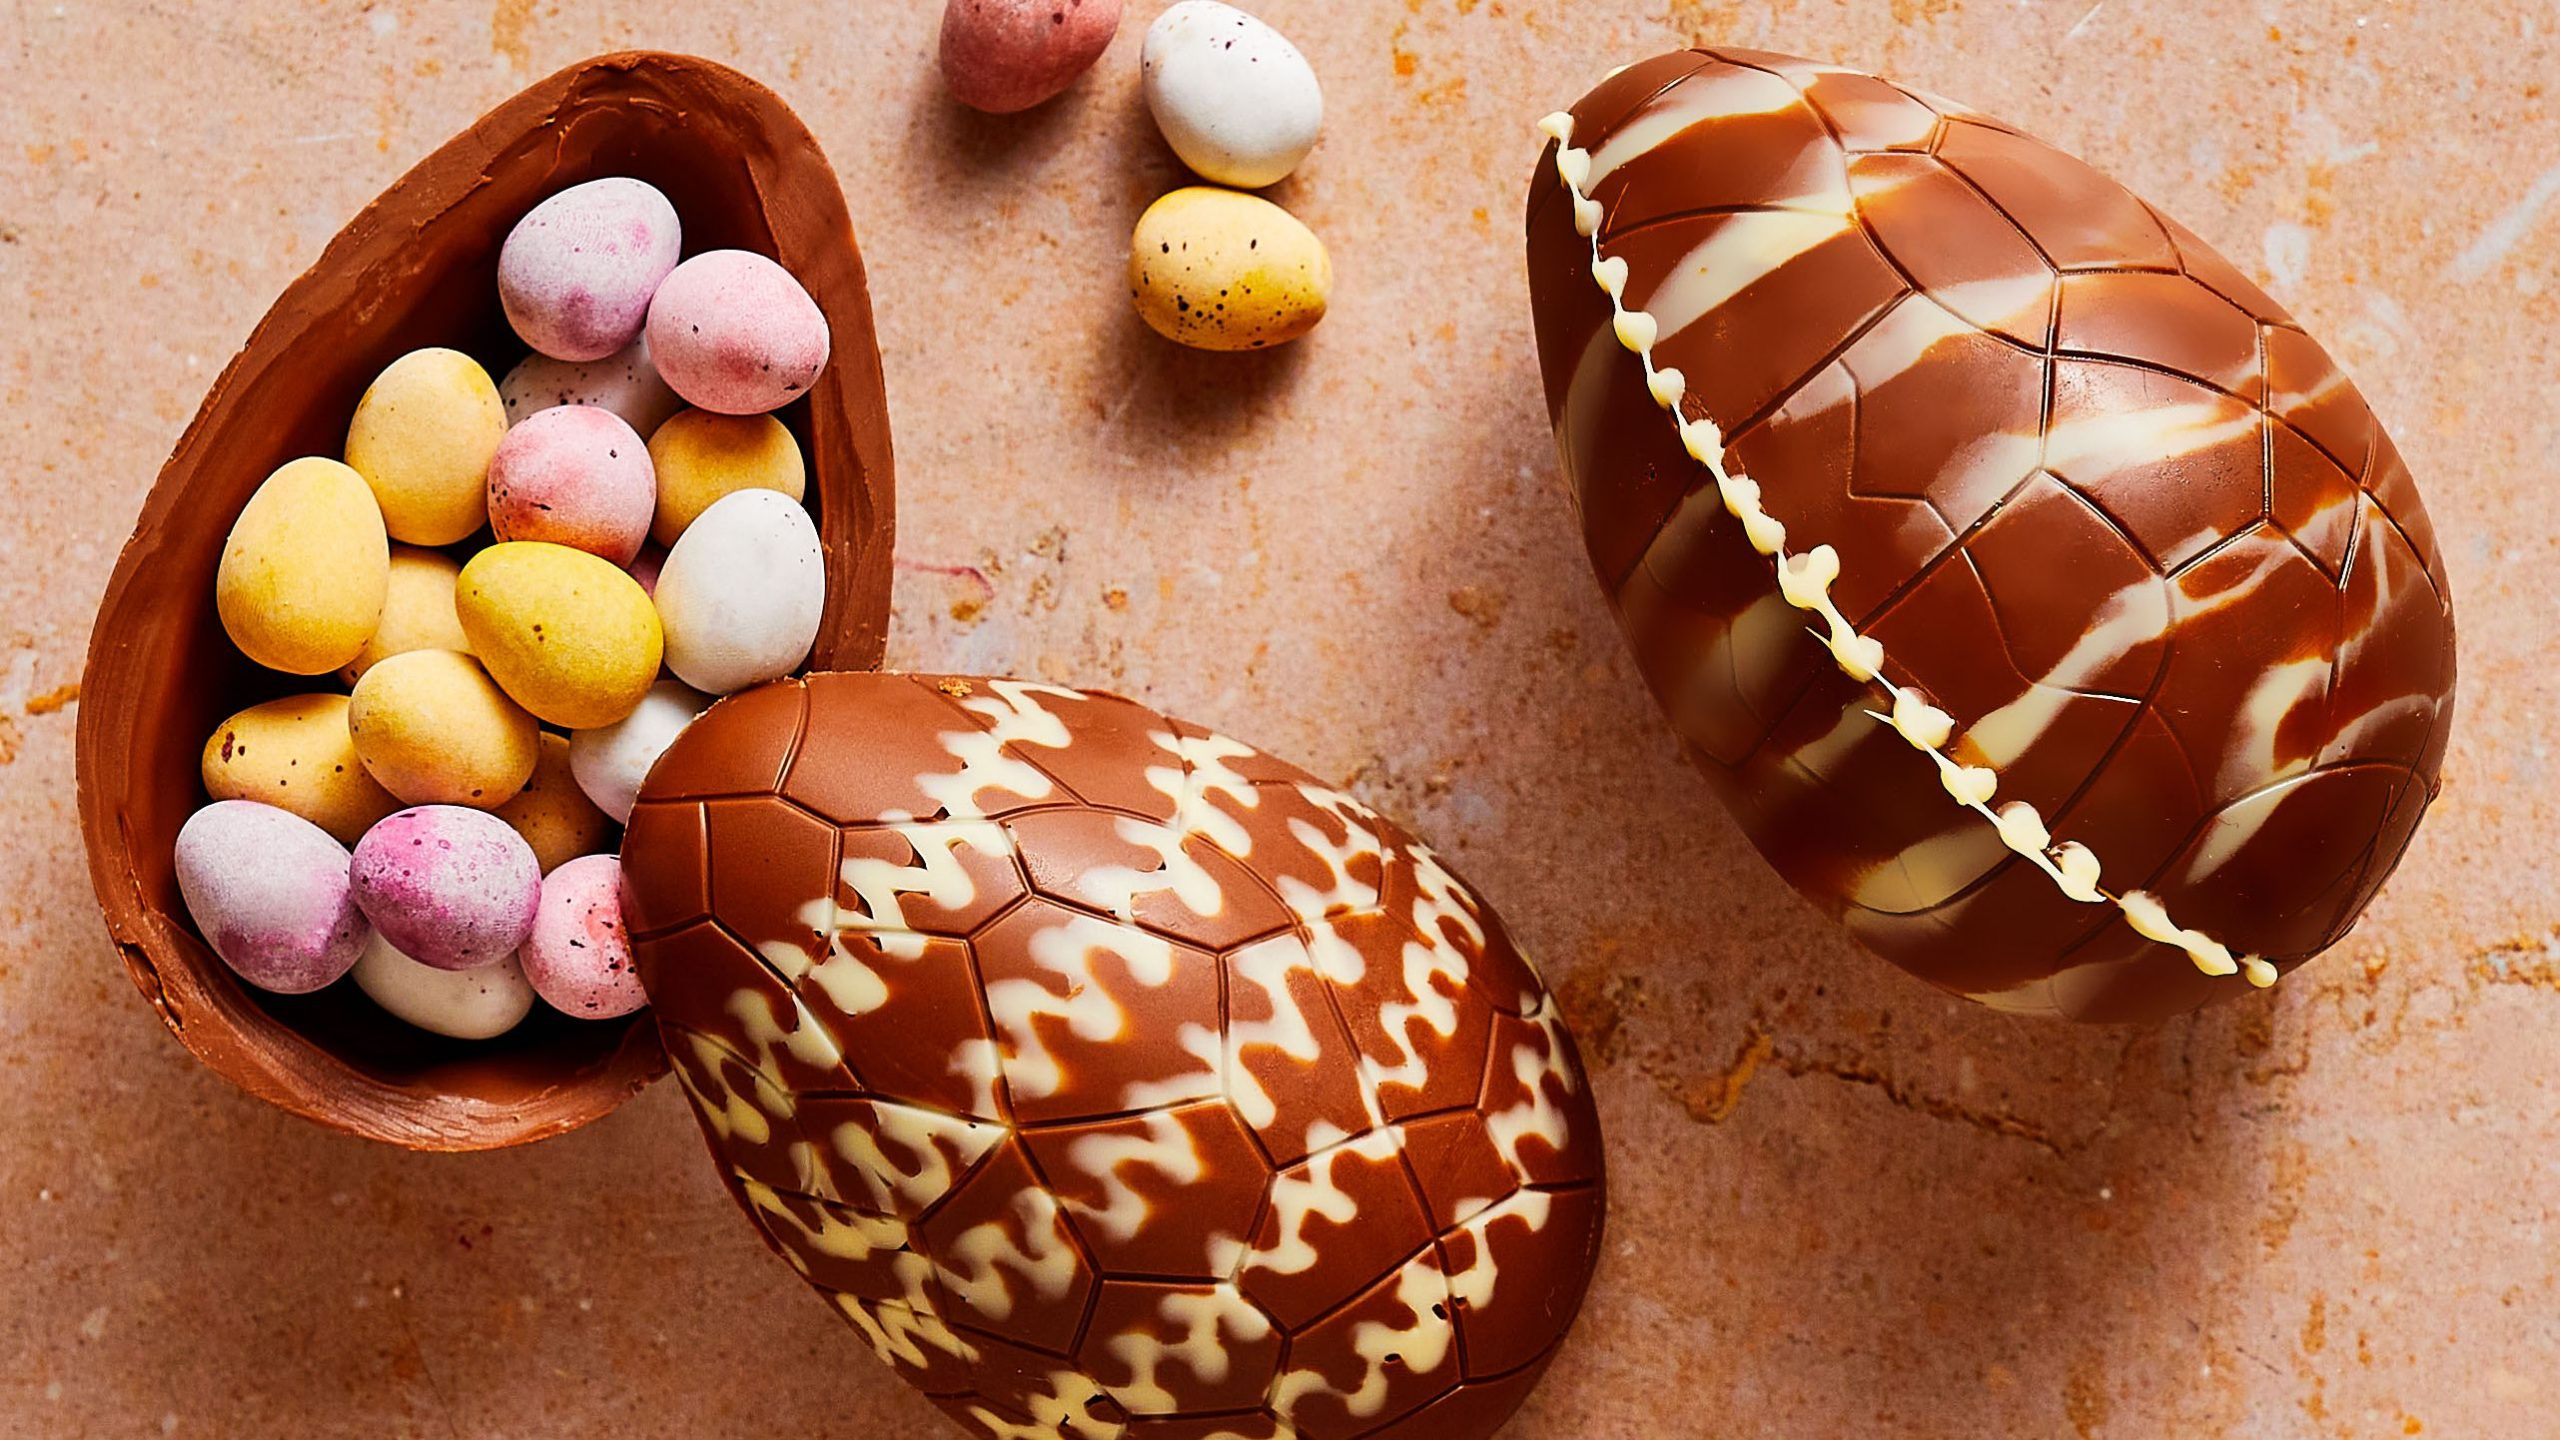 hollow-chocolate-easter-egg-520741-hero-02-1a6923fb61204a458c63e70bcf3021ac